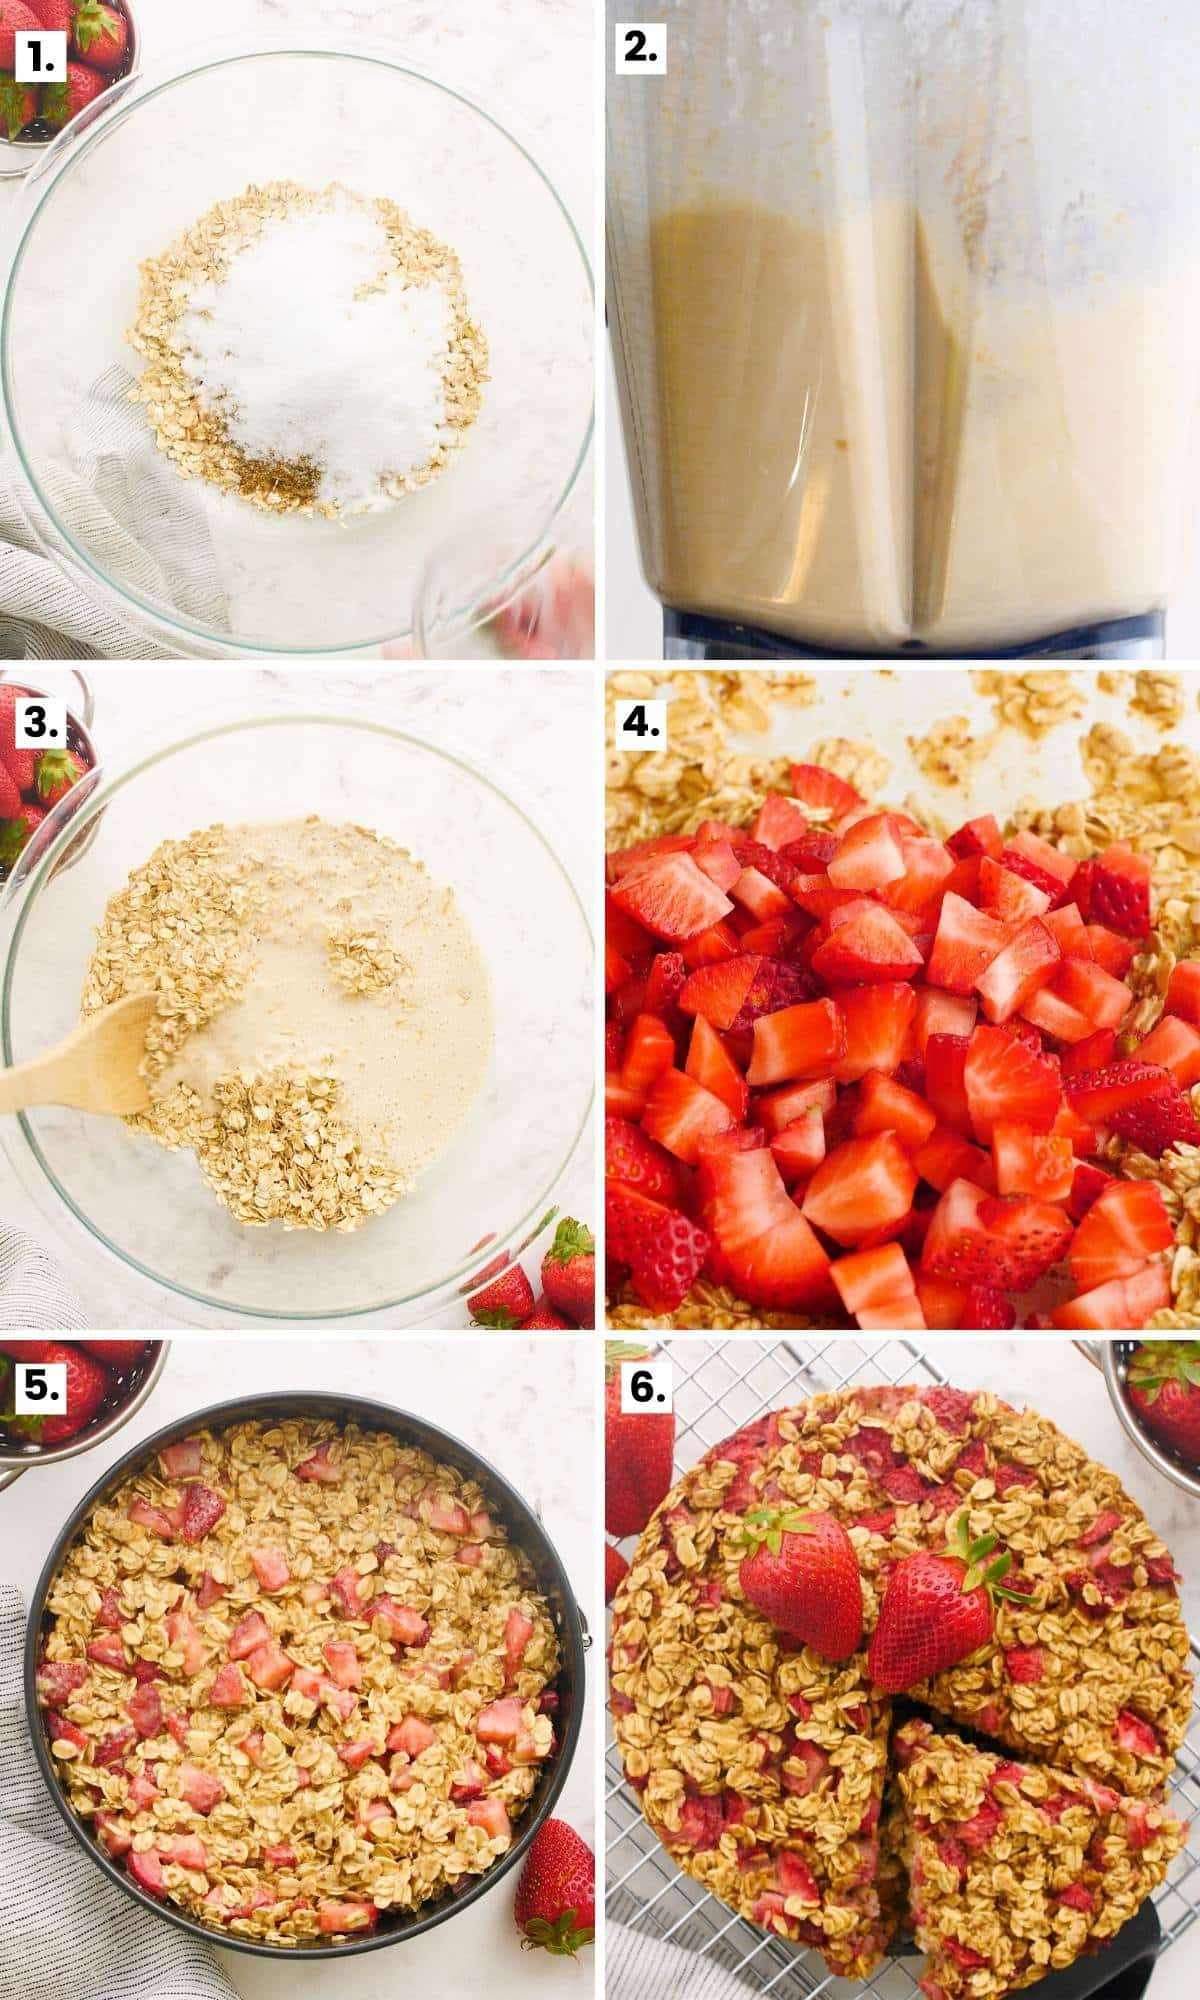 how to make strawberry baked oatmeal step-by-step as per the written instructions